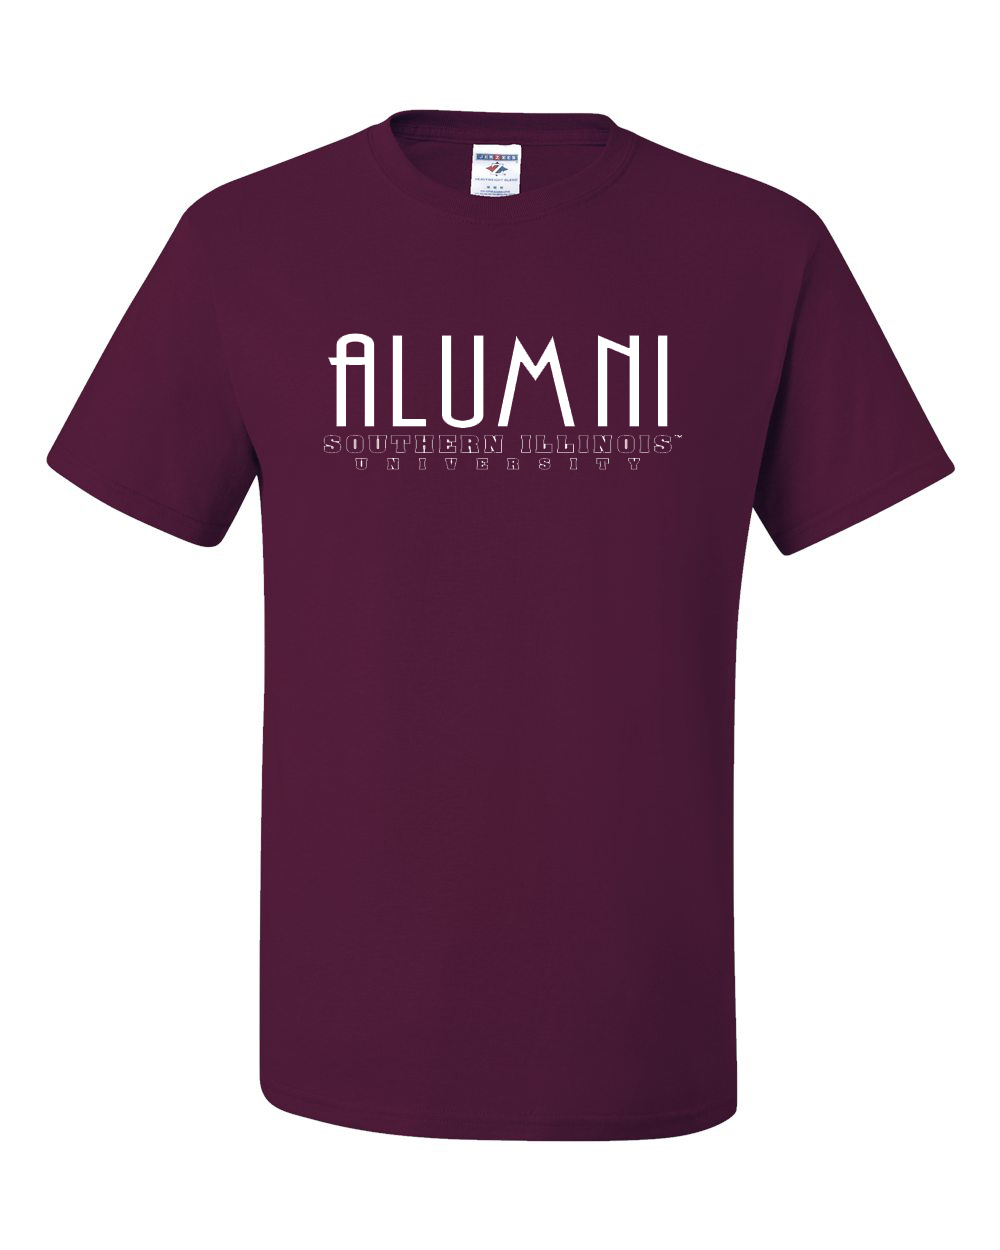 Image for the 710 BRANDED® ALUMNI SOUTHERN ILLINOIS T-SHIRT product